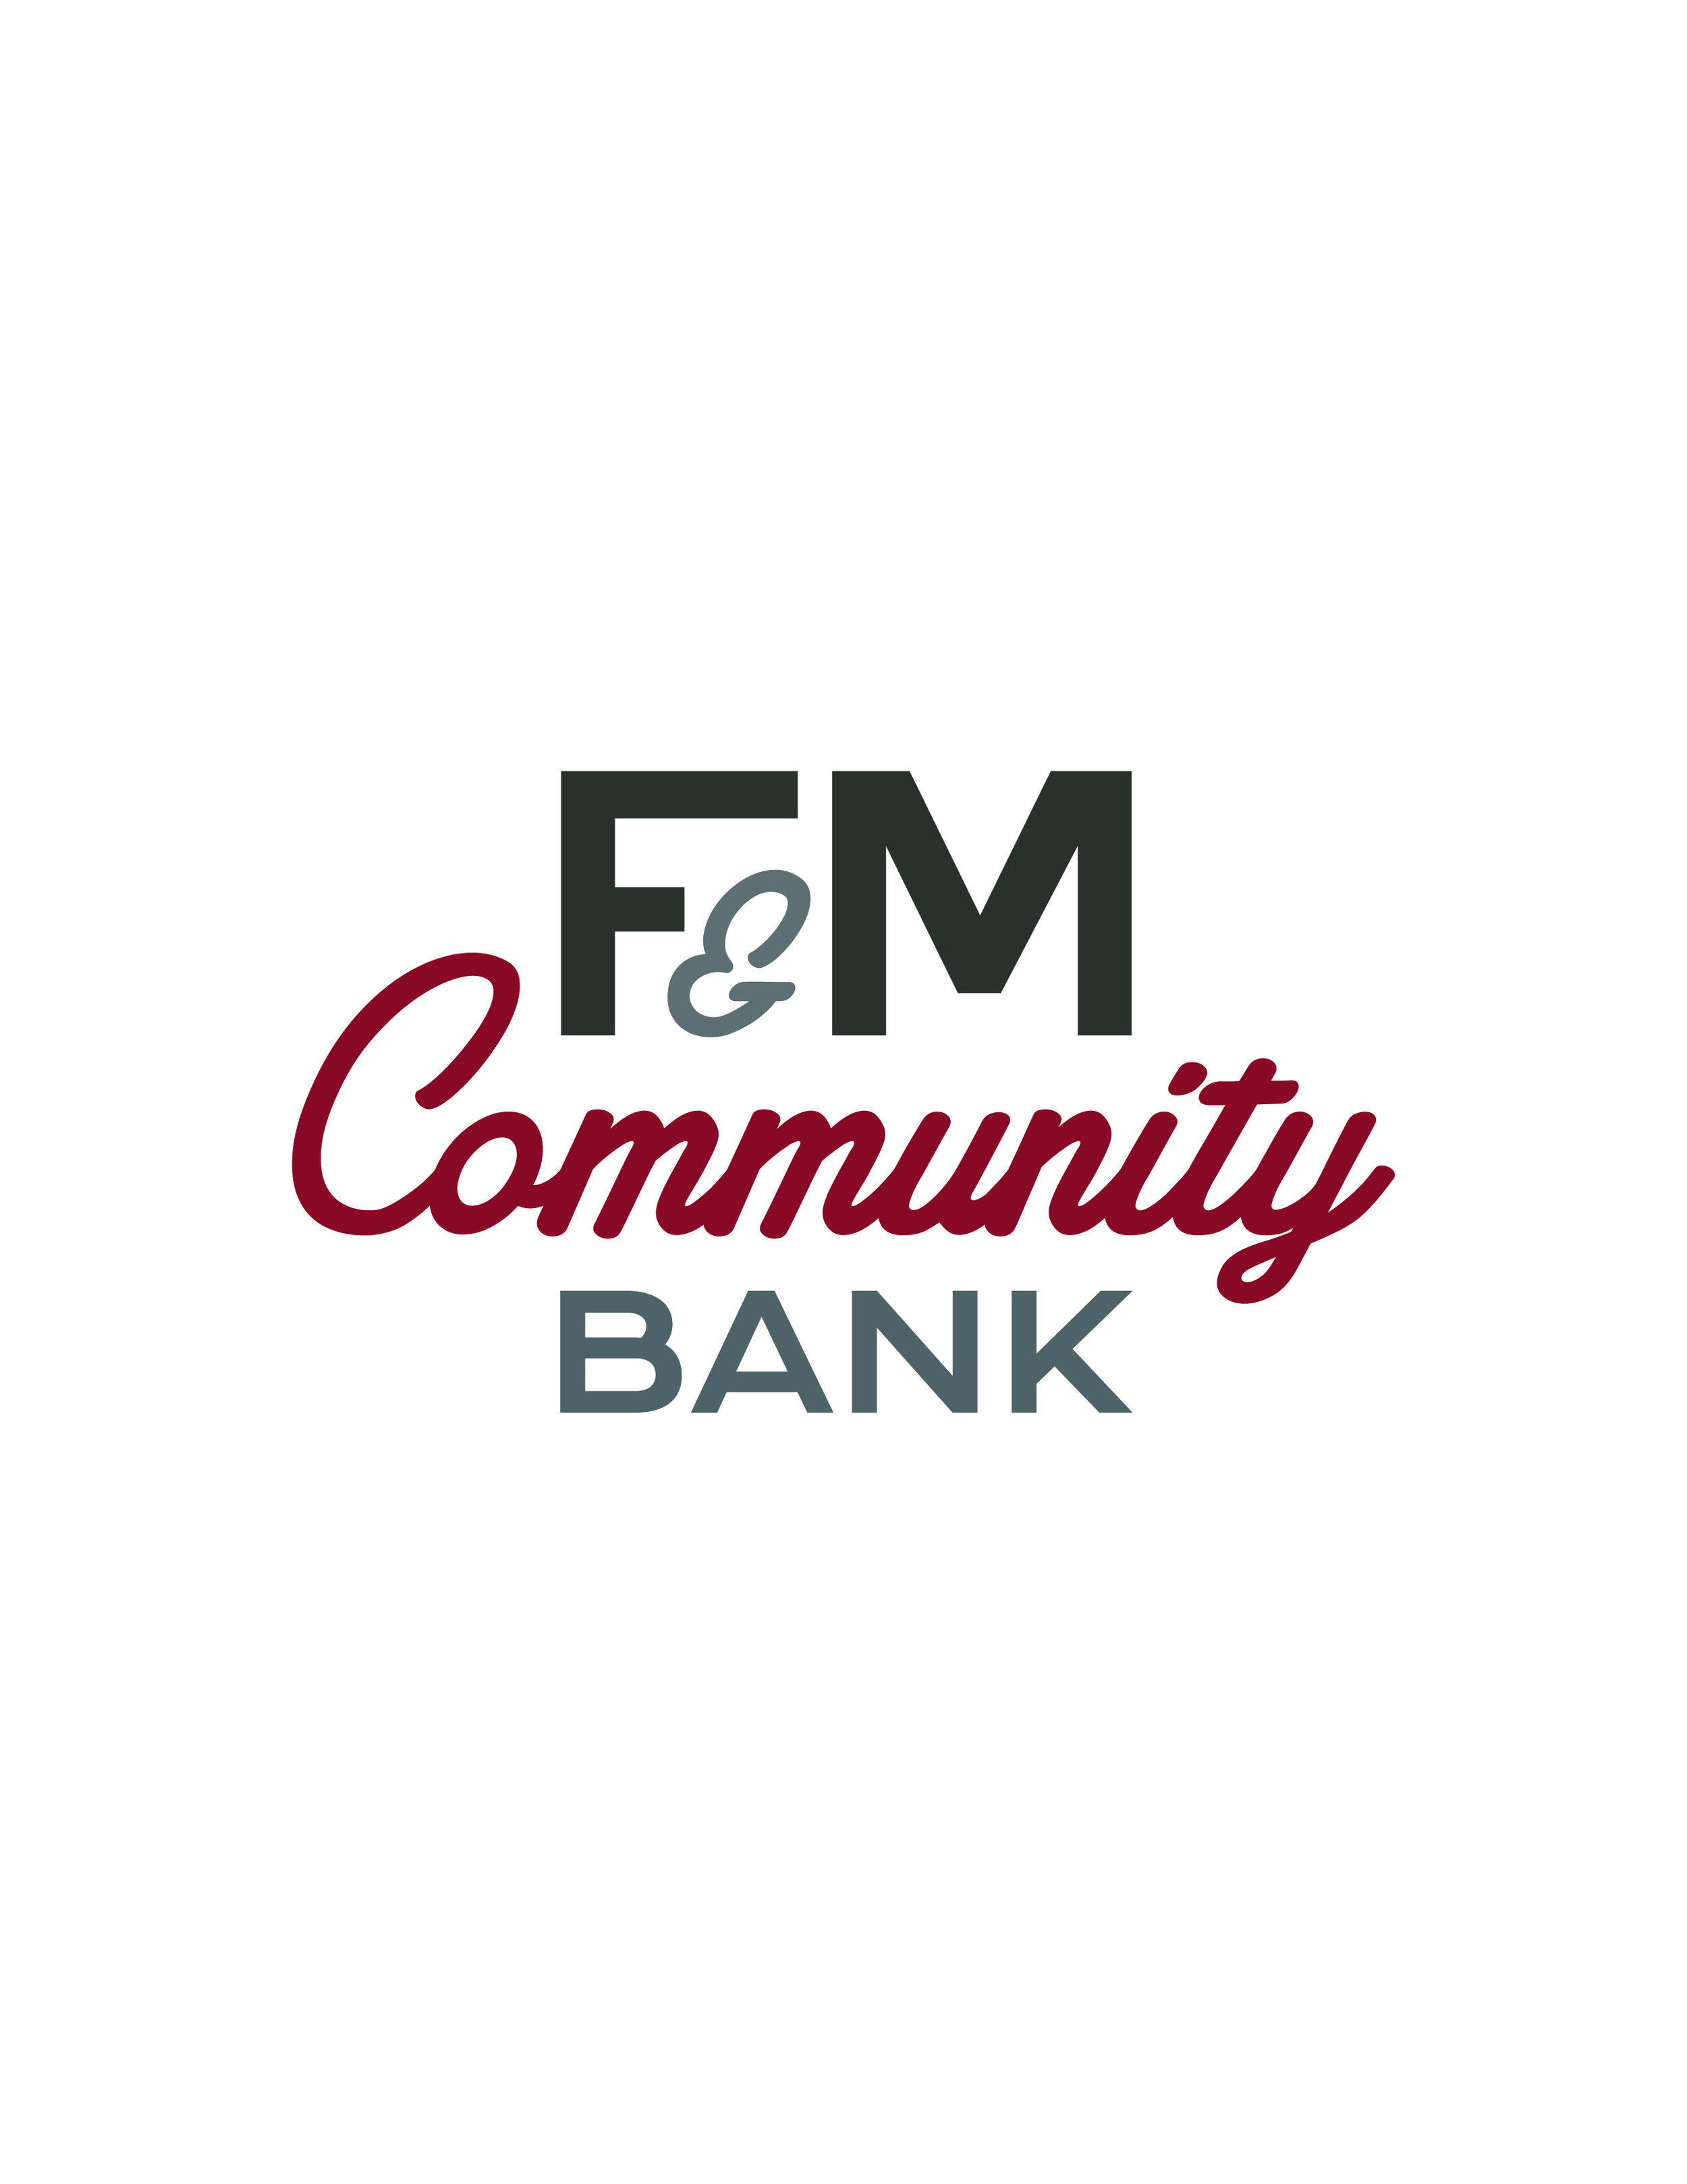 F&M-Brand-Assets-Print-02 (Use this One).jpg